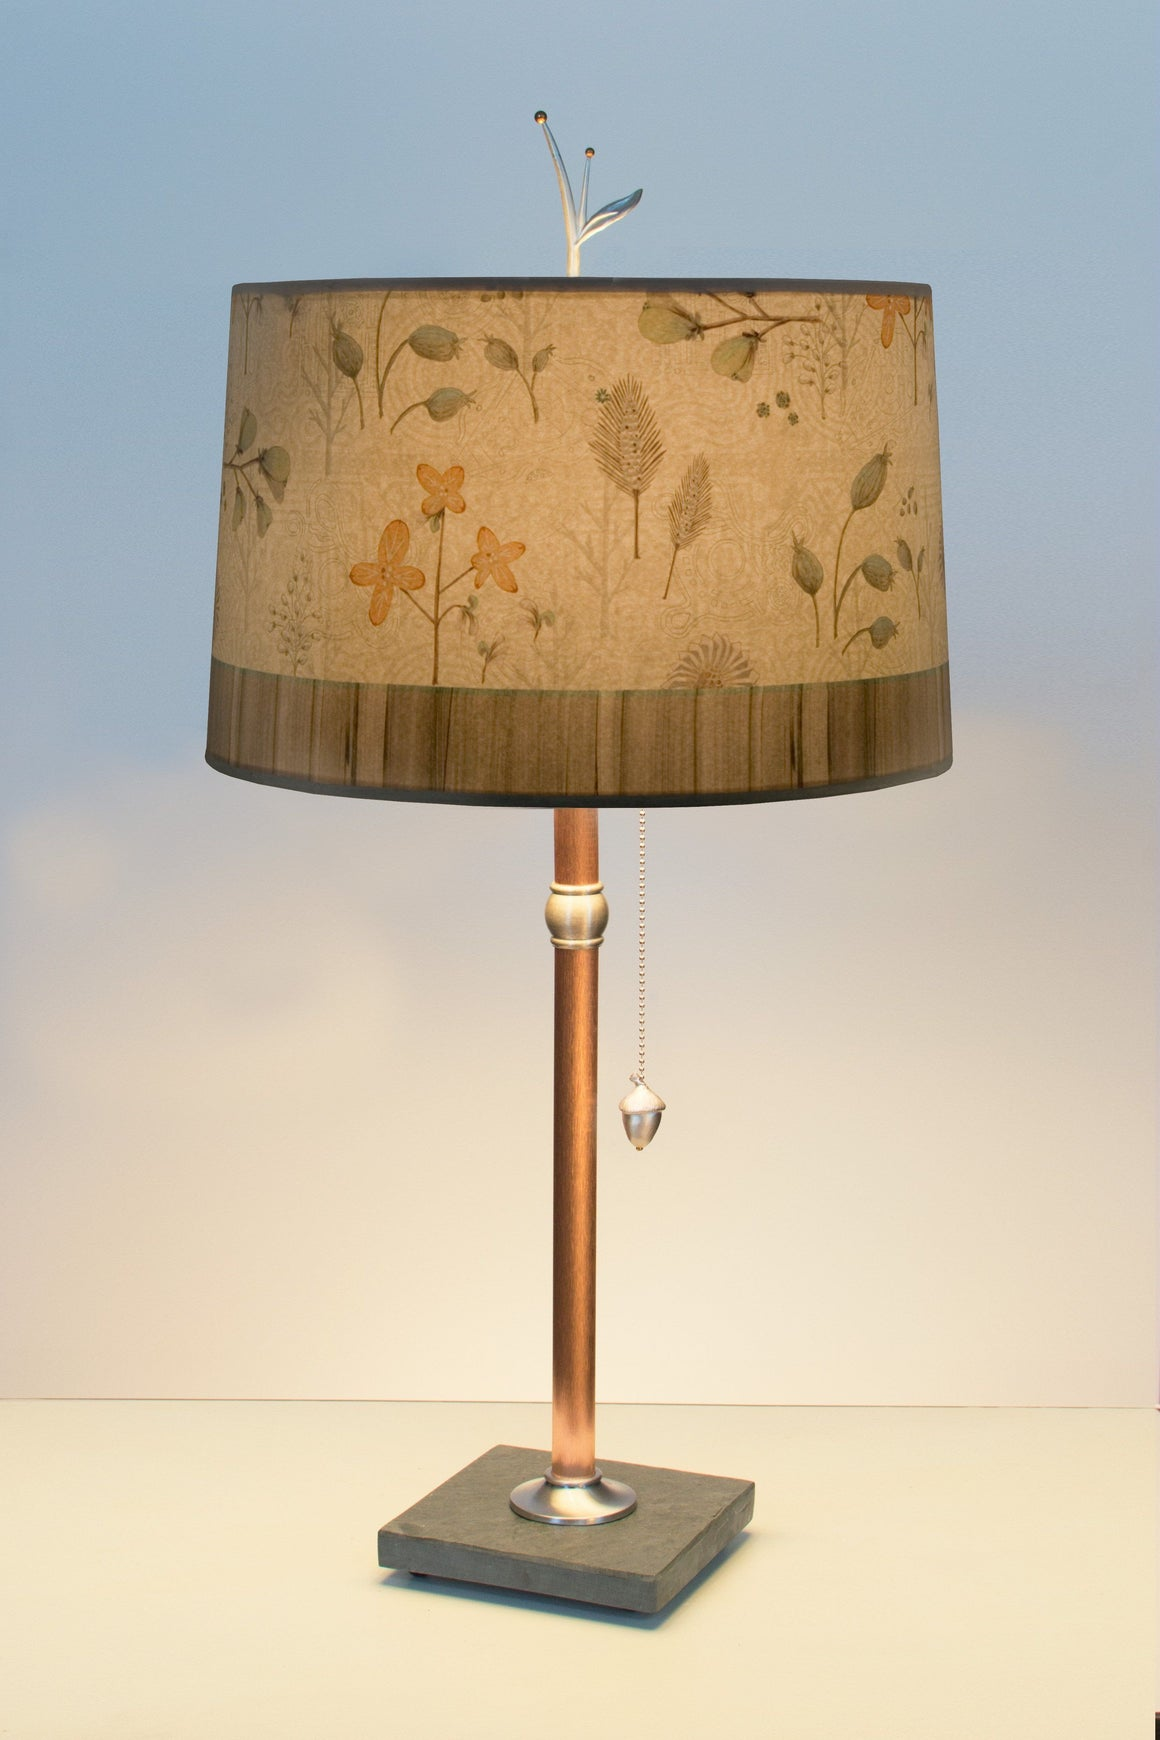 Copper Table Lamp with Large Drum Shade in Flora and Maze